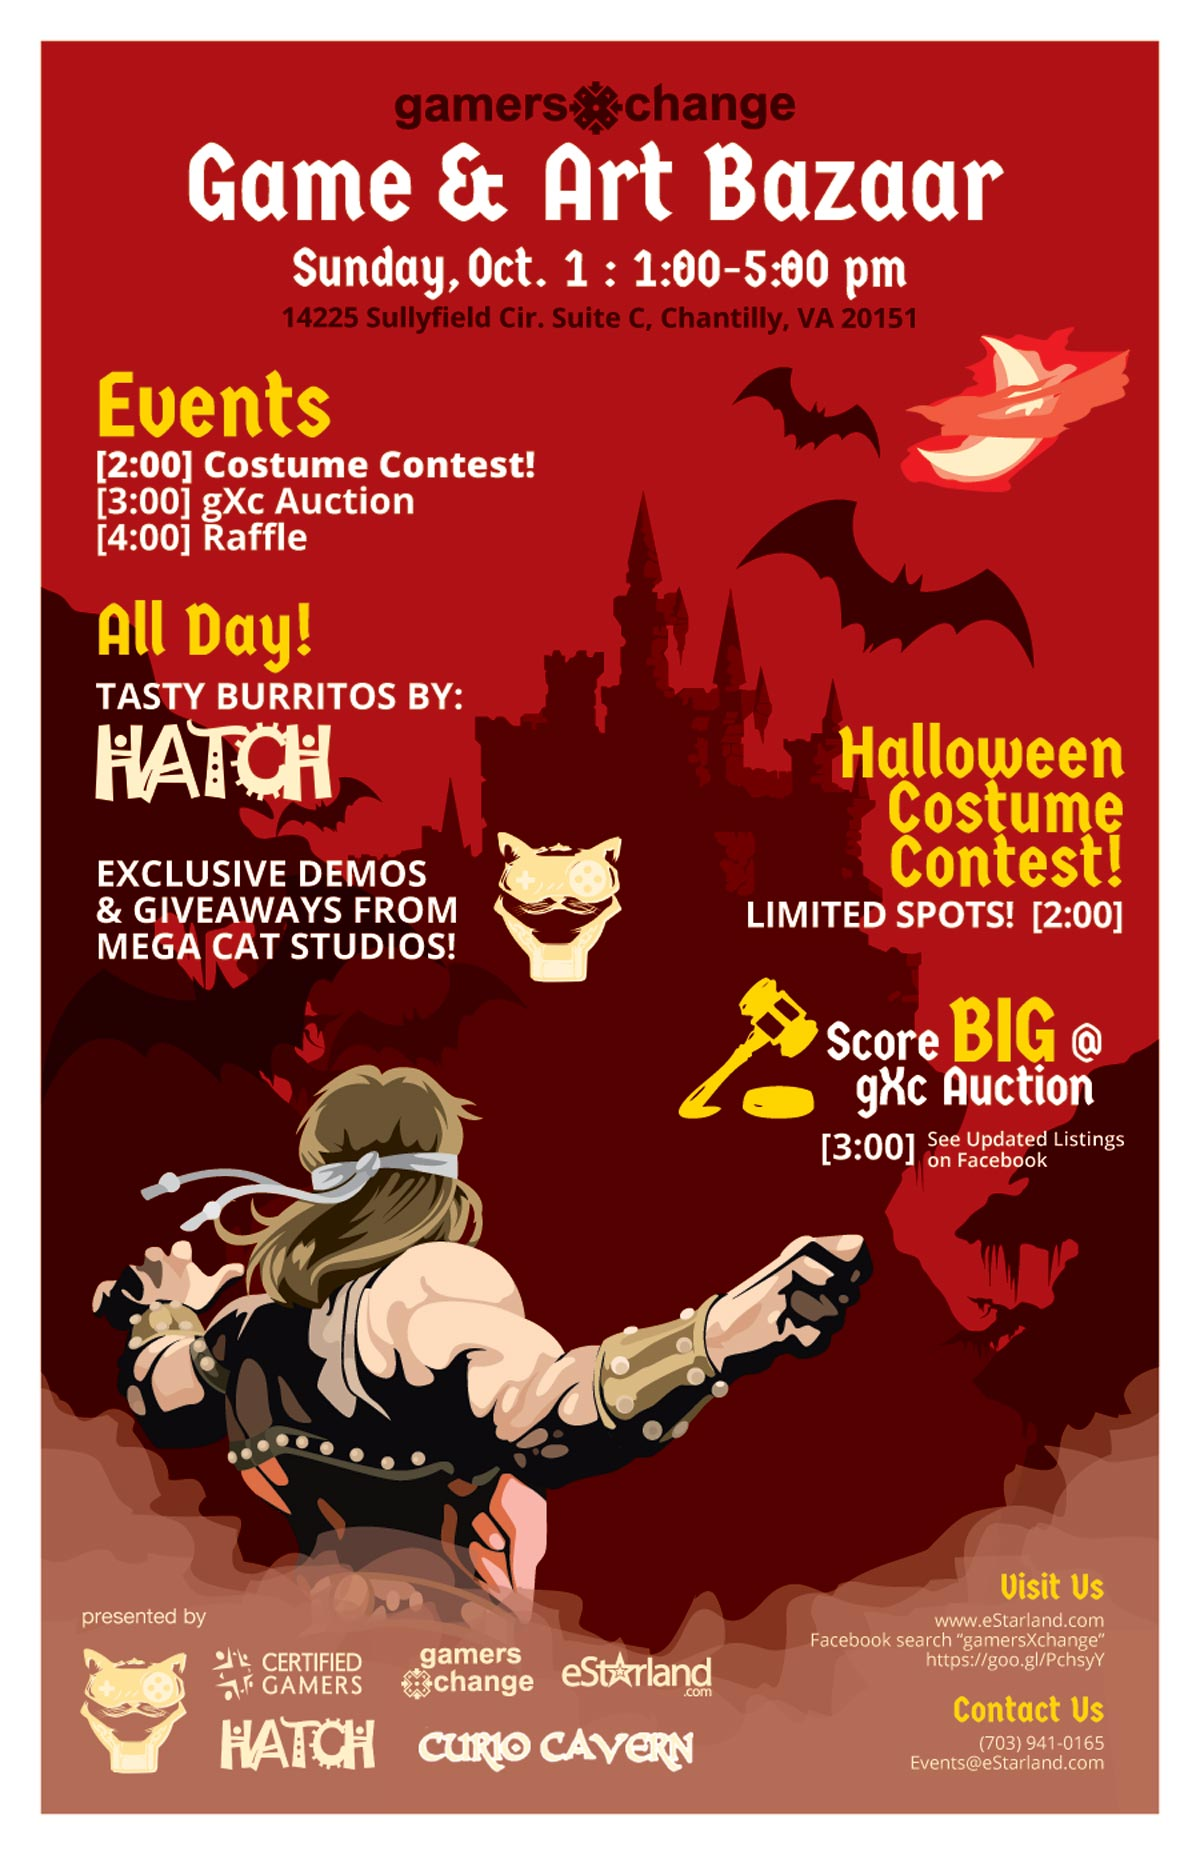 Join us for gamersXchange on October 1st featuring Costume Contest!